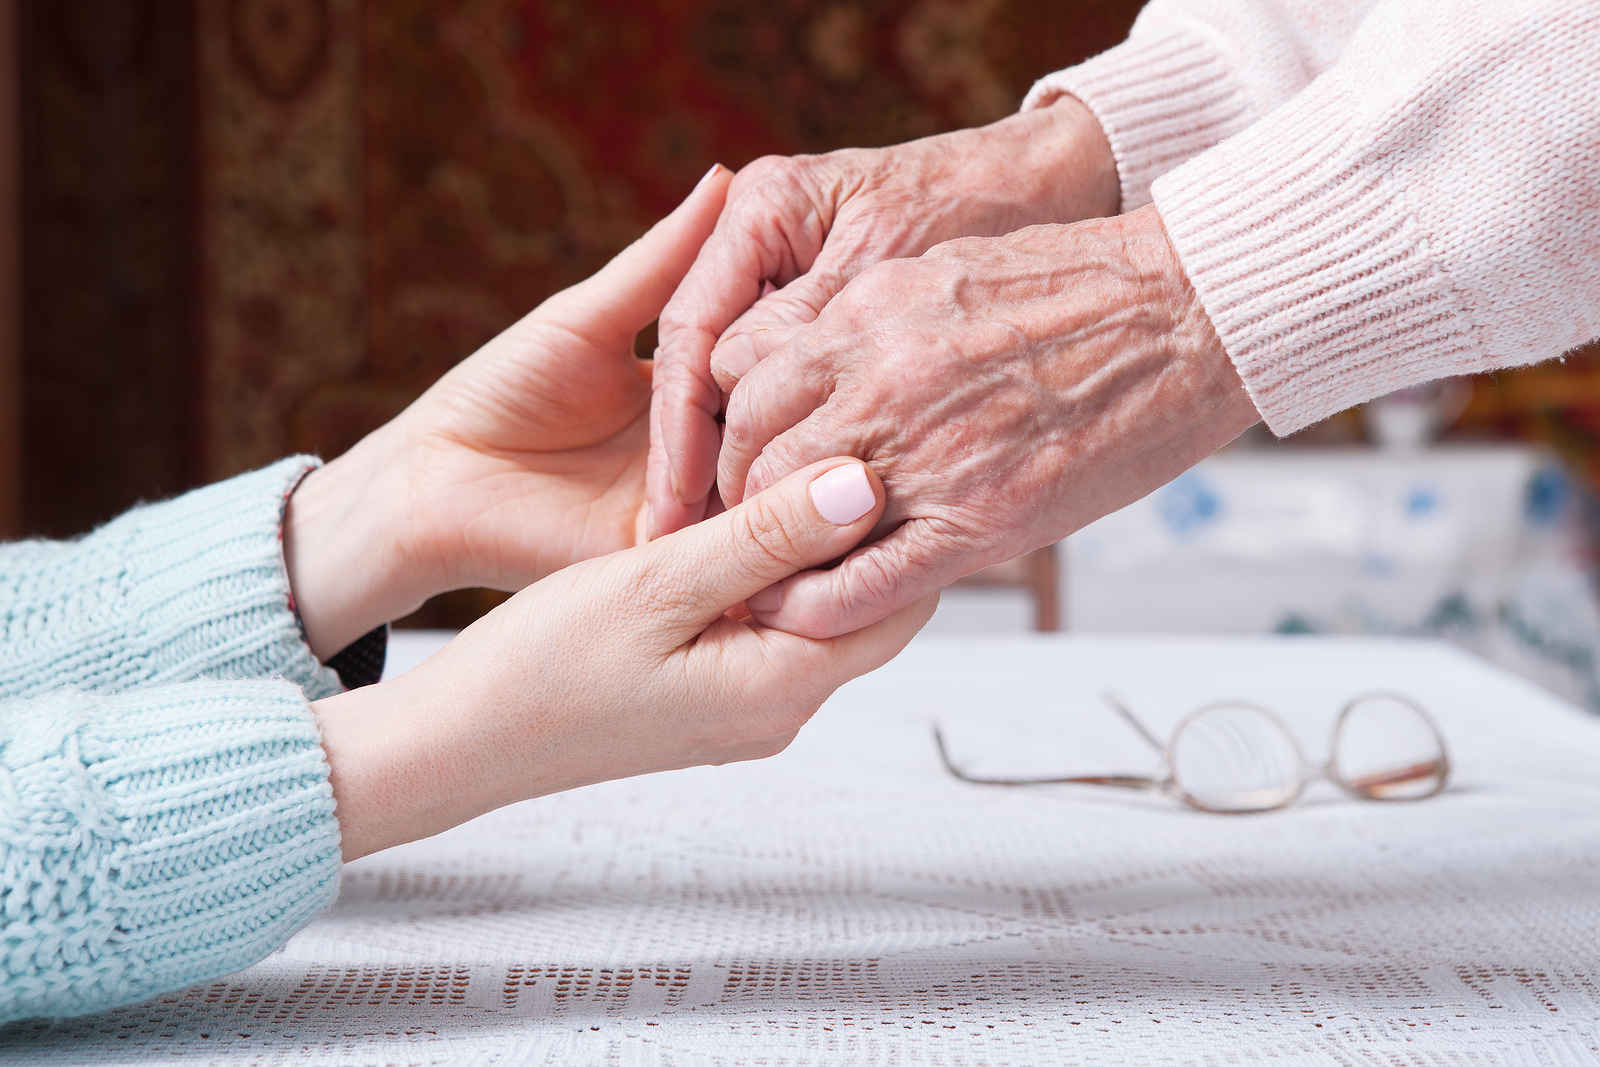 How Can I Detect Financial Abuse In A West Virginia Nursing Home?